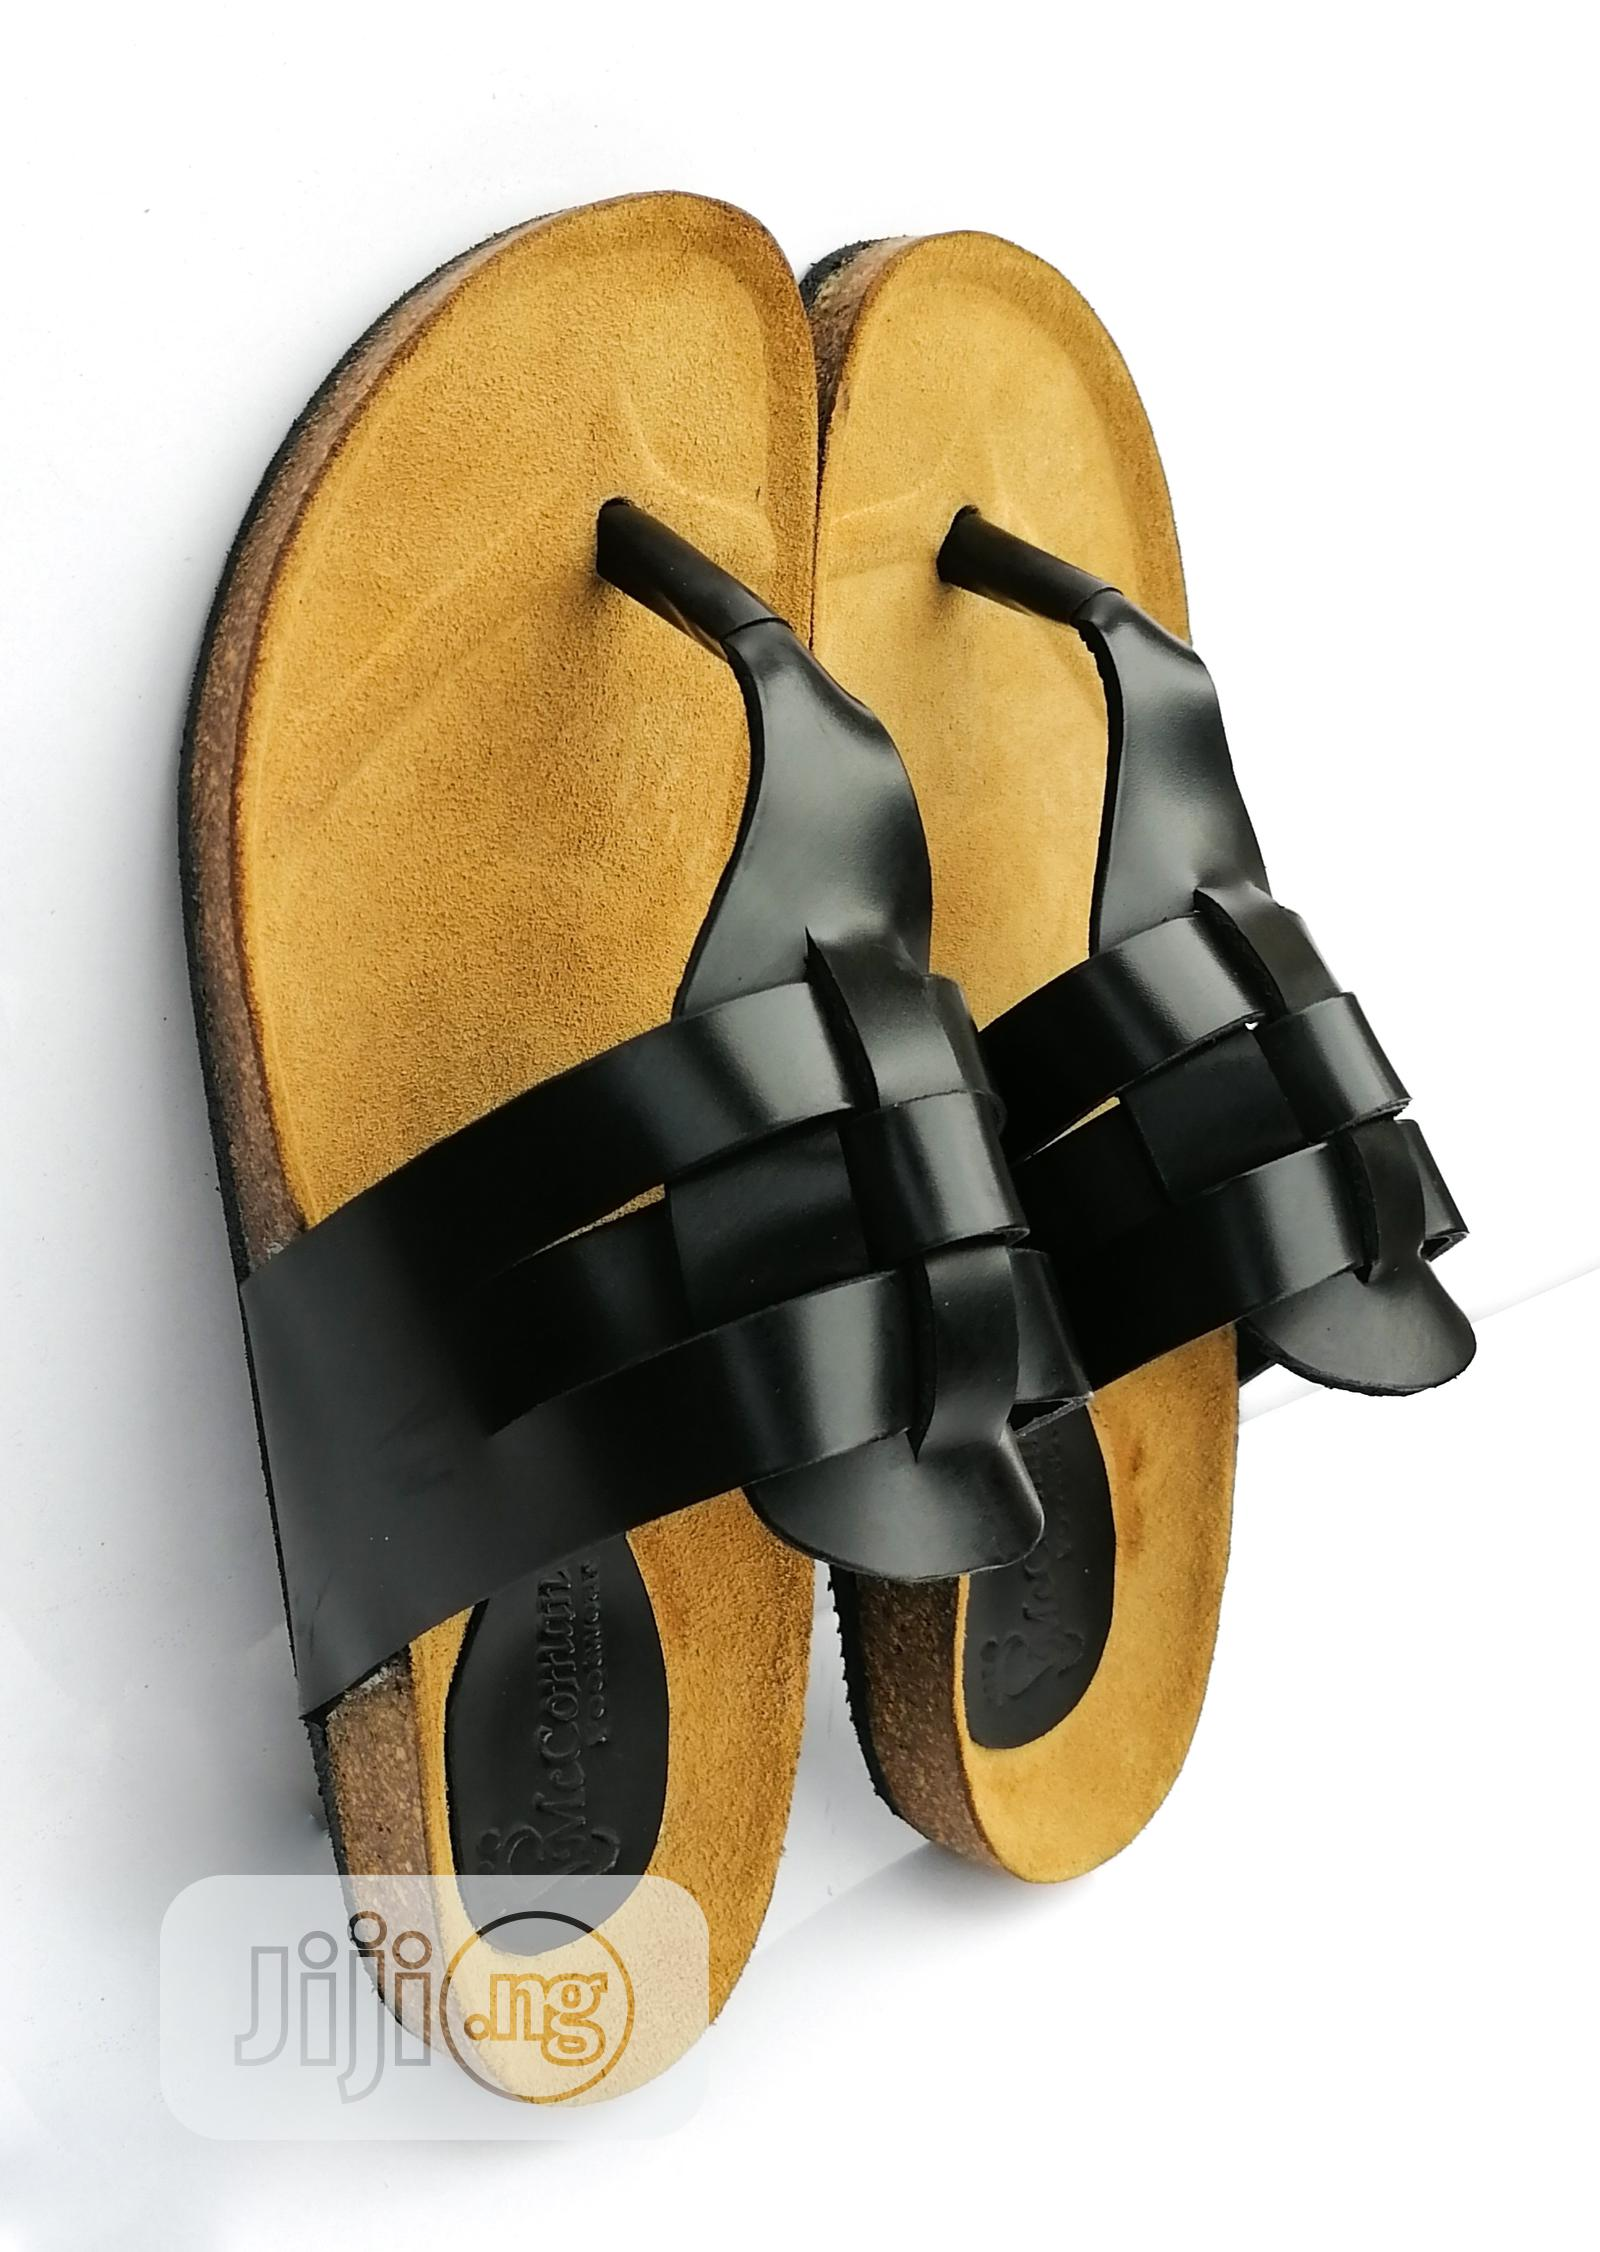 autor esposa objetivo  Archive: Birkenstock Slippers in Ikeja - Shoes, Mary | Jiji.ng for sale in  Ikeja | Buy Shoes from Mary on Jiji.ng